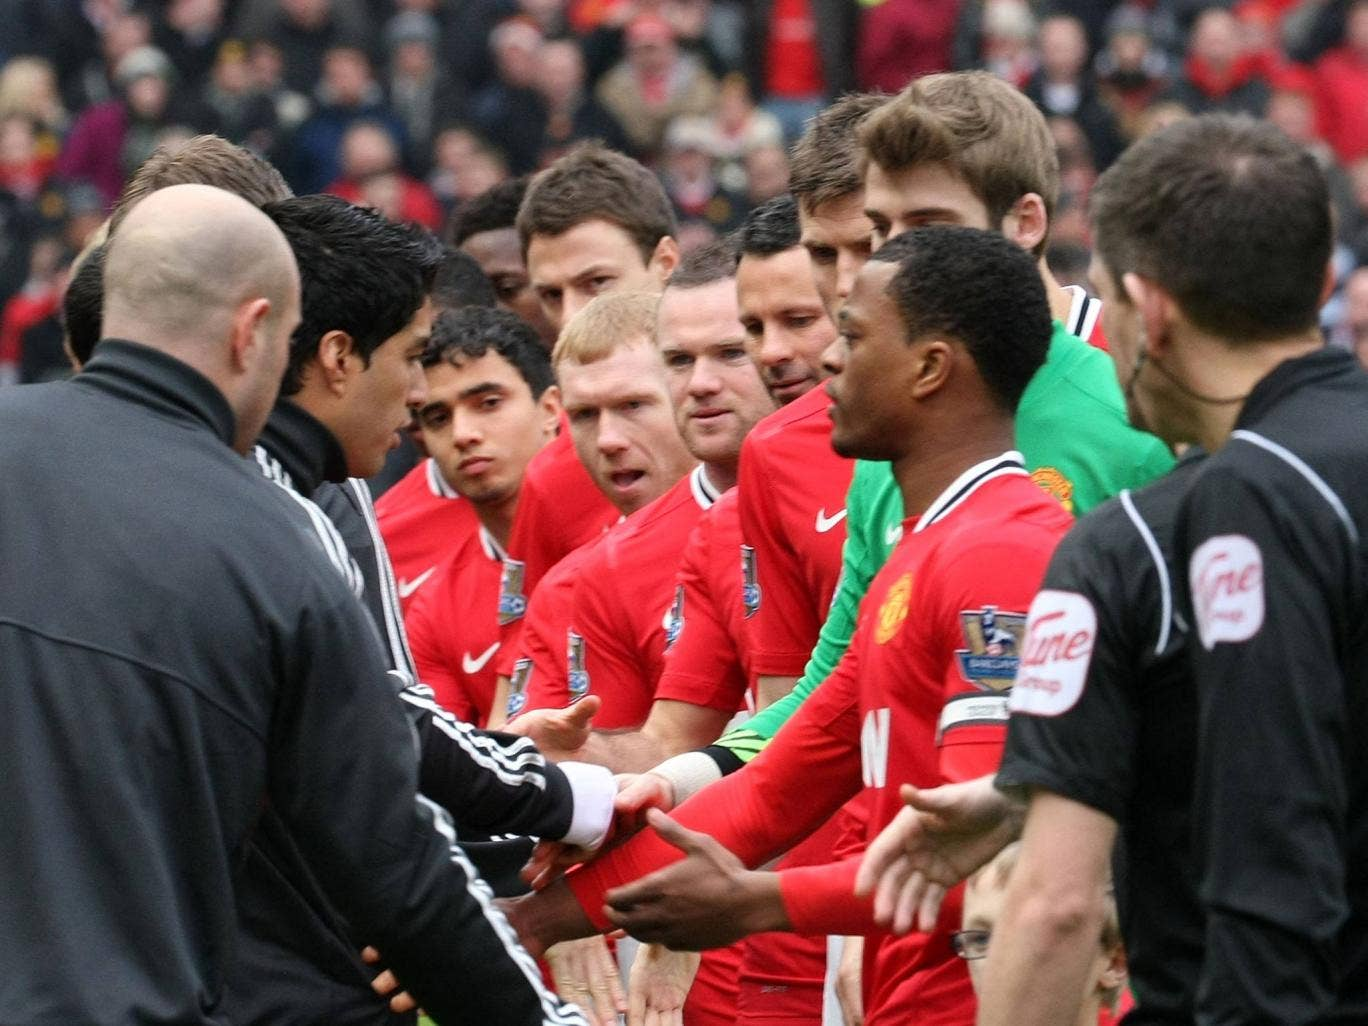 <b>February 2012:</b> United and Liverpool met again at Old Trafford, but more controversy followed as Suarez refused to shake Evra's hand before kick-off.